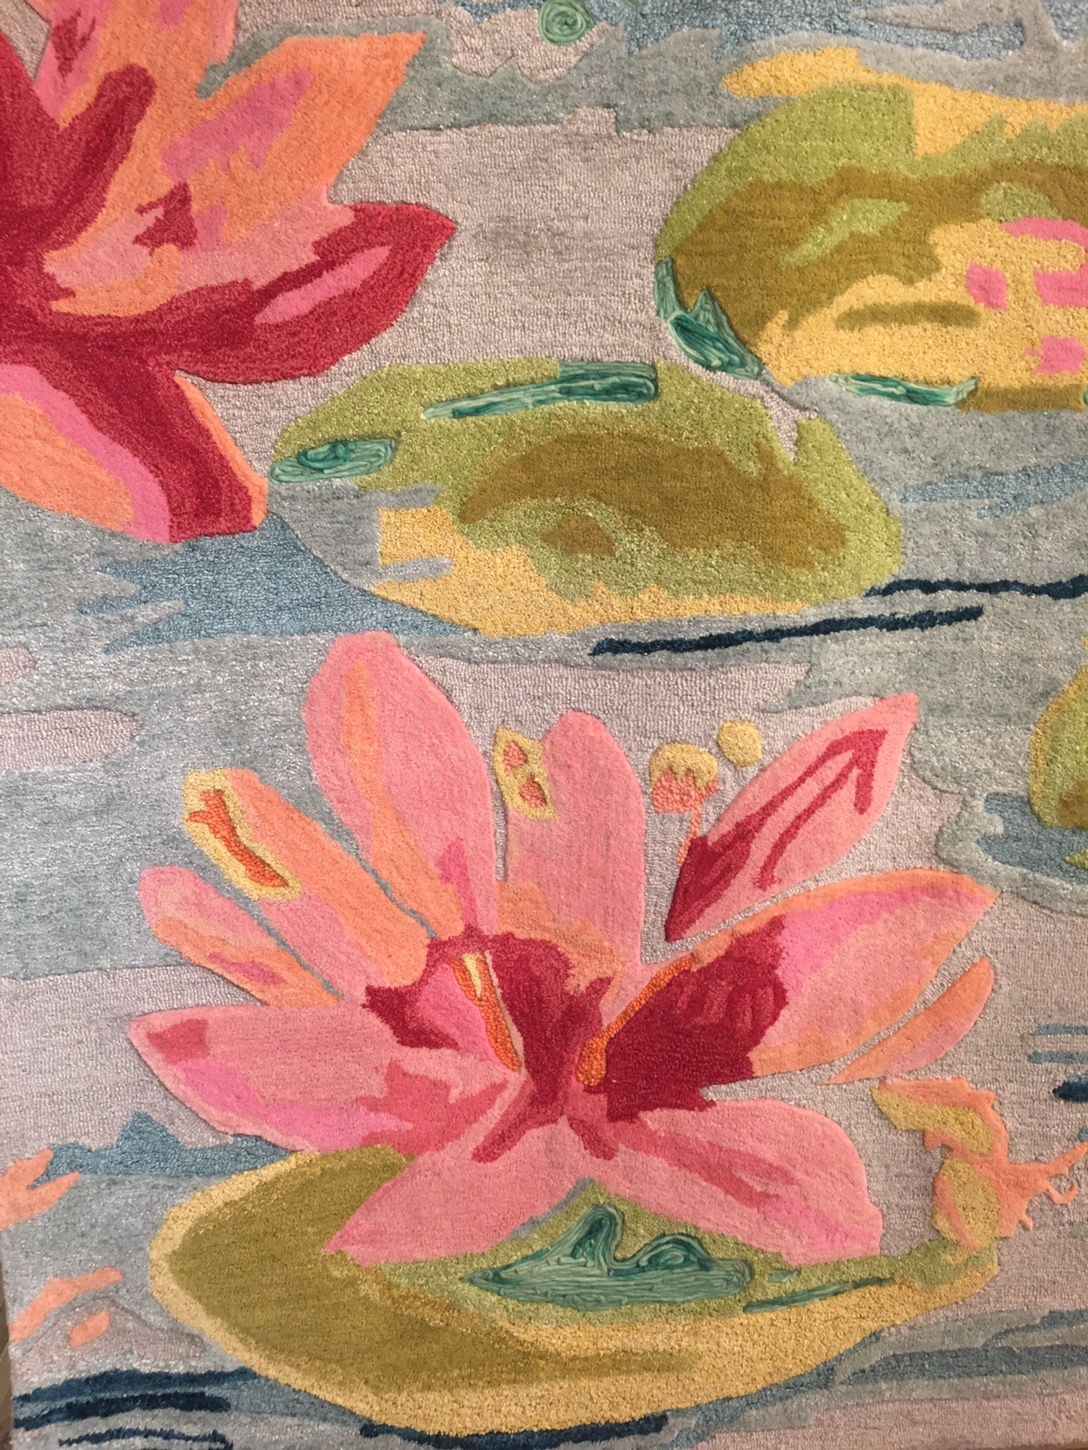 Company C Unique Water Lilies Rug At Americasmart Rug